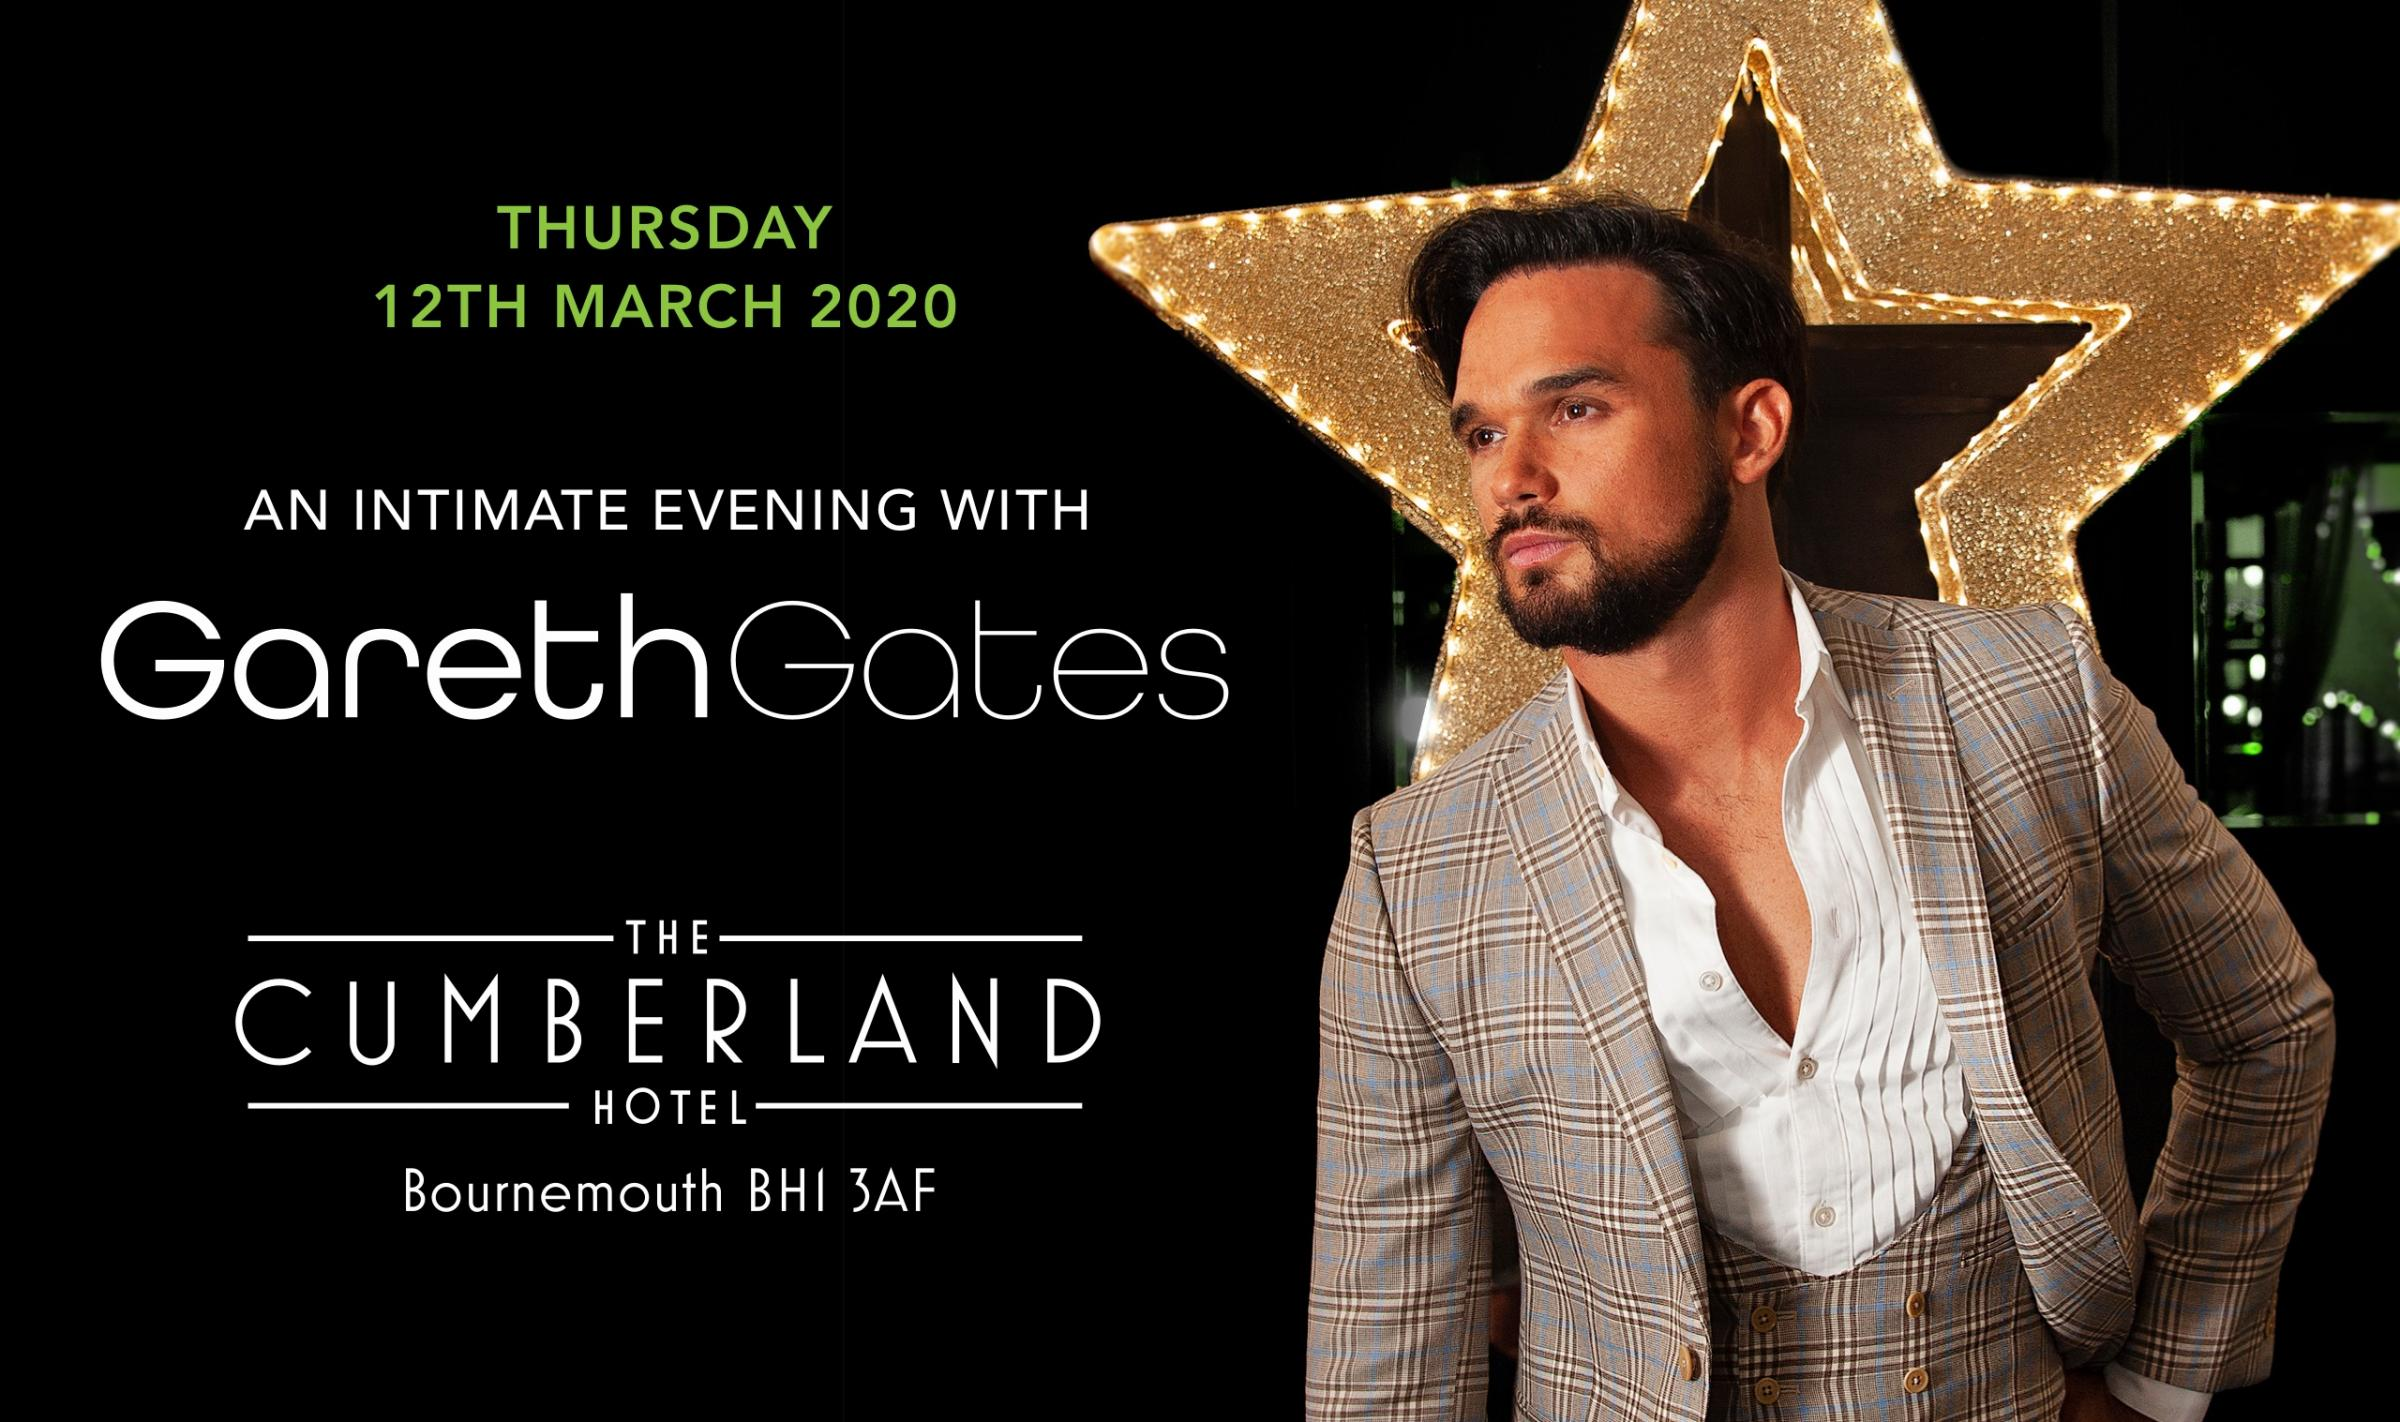 An Intimate Evening with Gareth Gates @ Cumberland Hotel